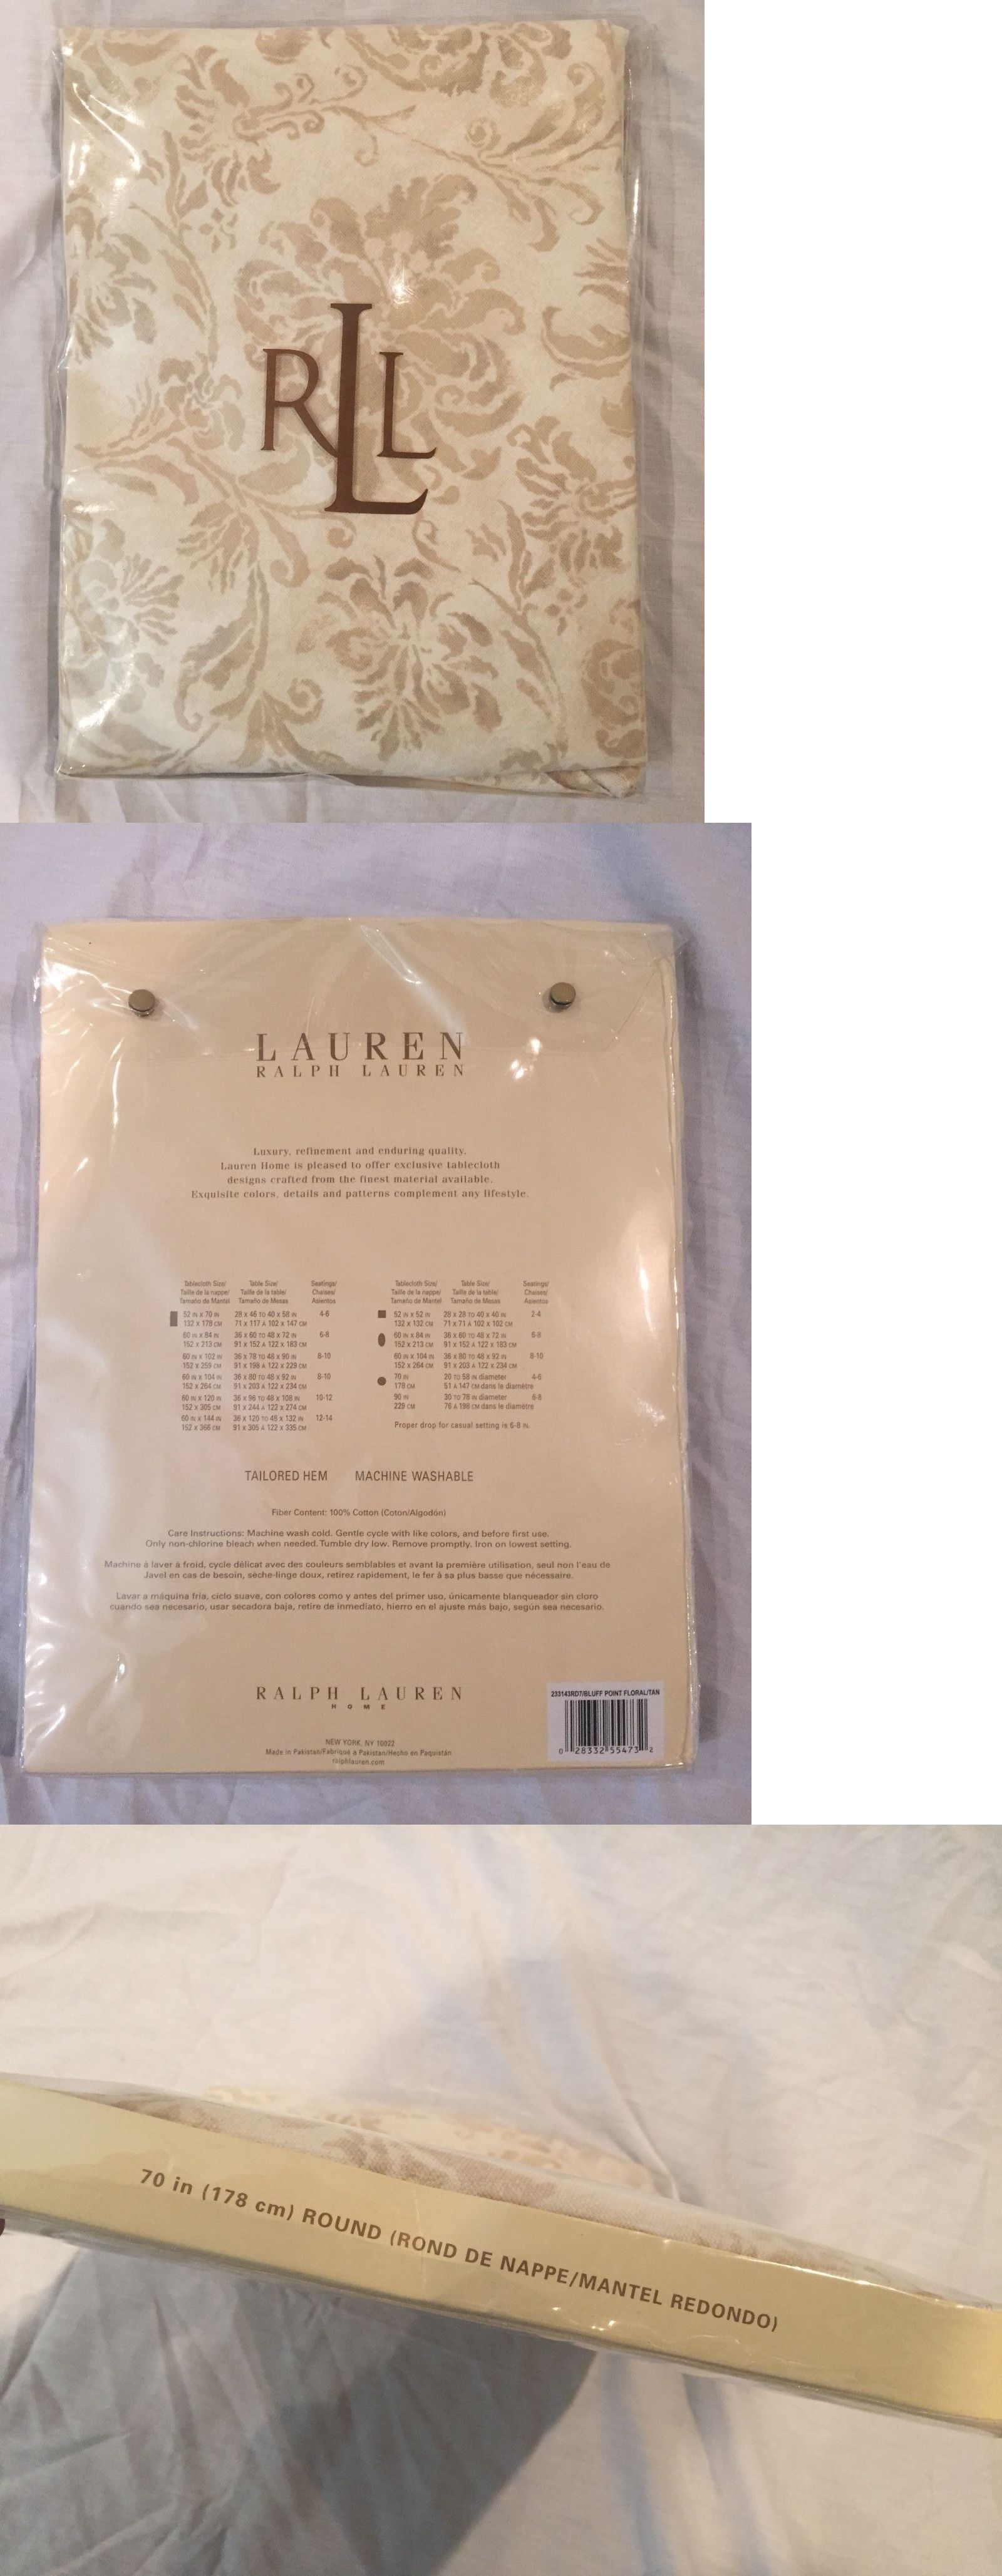 Amazing Ralph Lauren Table Linens Part - 13: Table Linen Sets 71238: Nip Lauren Ralph Lauren Bluff Point Floral Tan 70  In Round